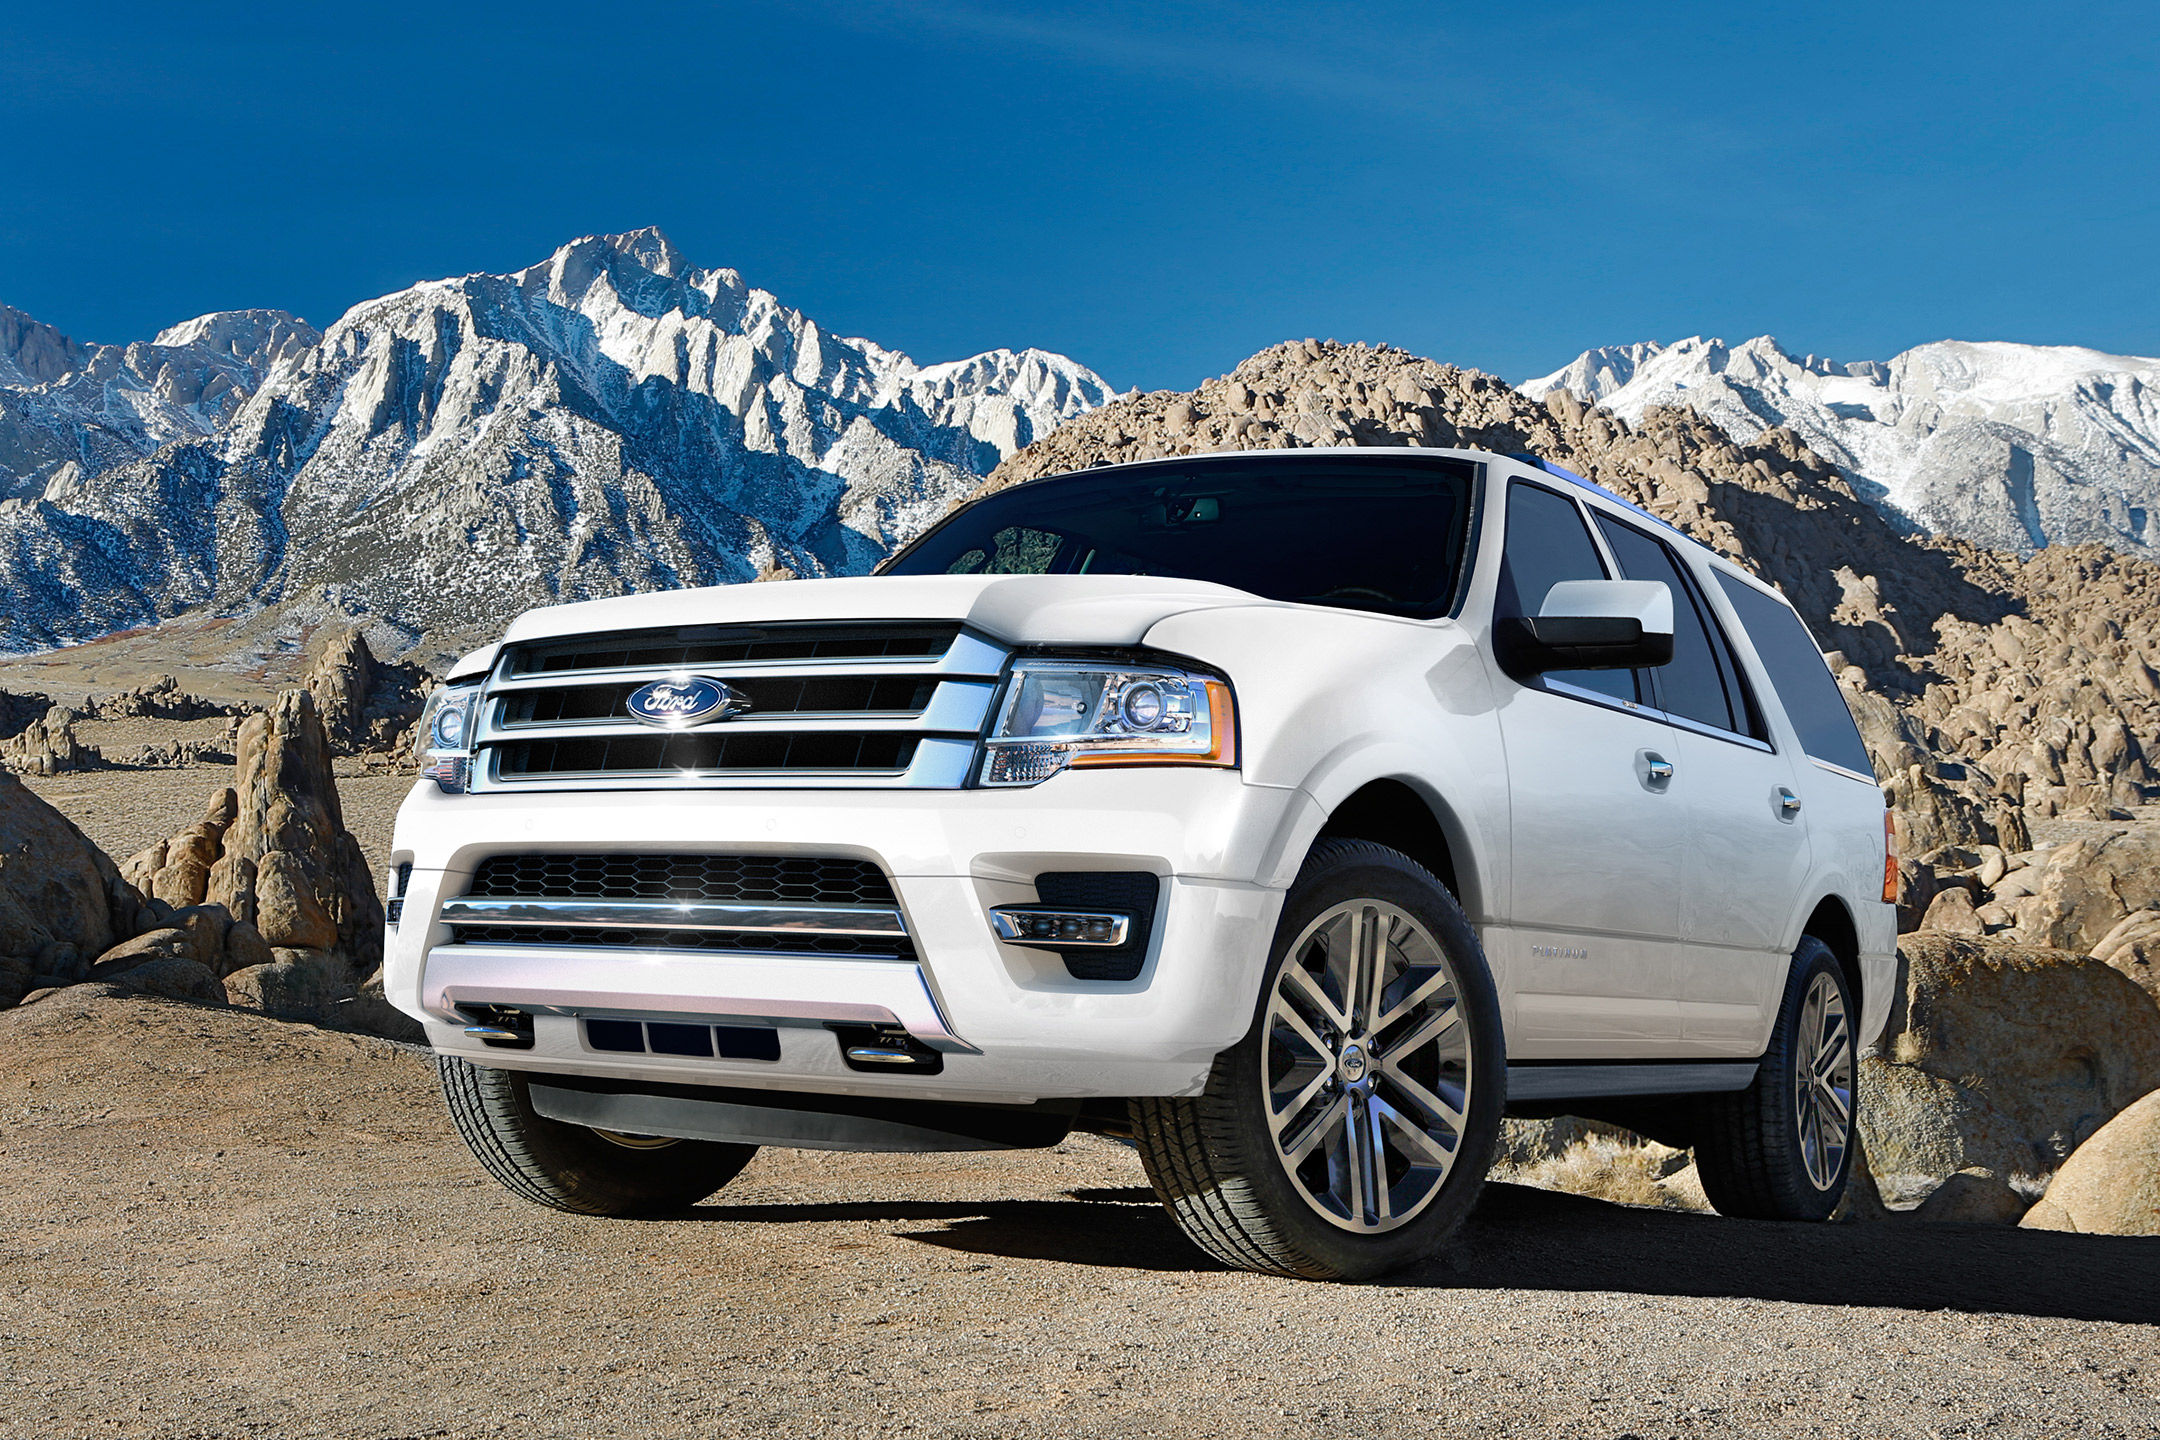 2017 ford expedition overview the news wheel. Black Bedroom Furniture Sets. Home Design Ideas